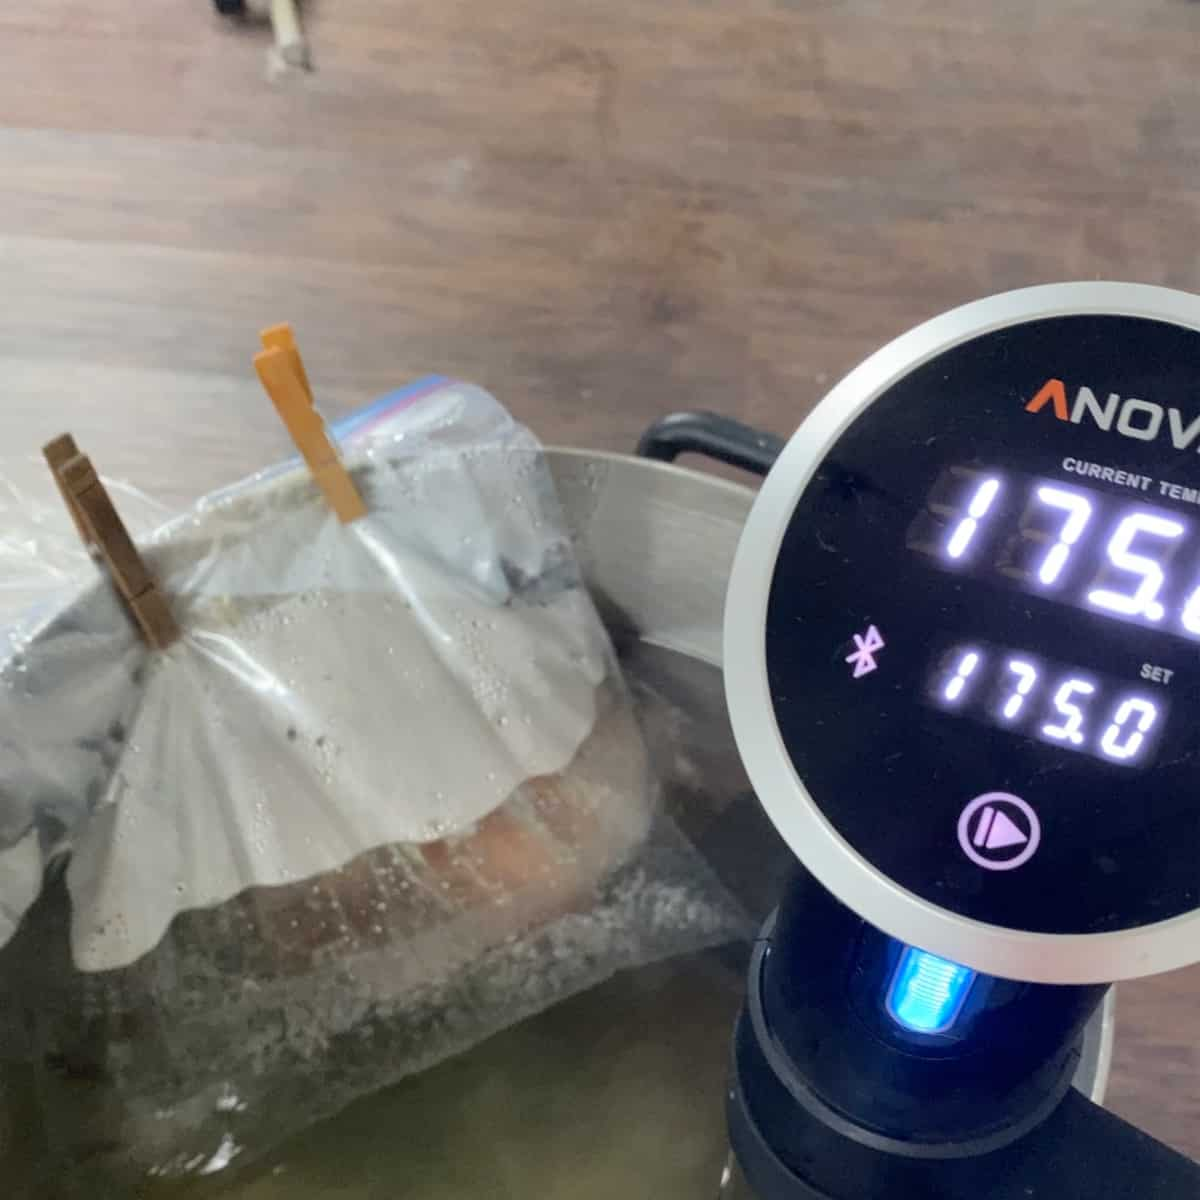 Sous Vide cooker set to 175 in a large pot with a corned beef roast and a bag of water on top weighing it down.